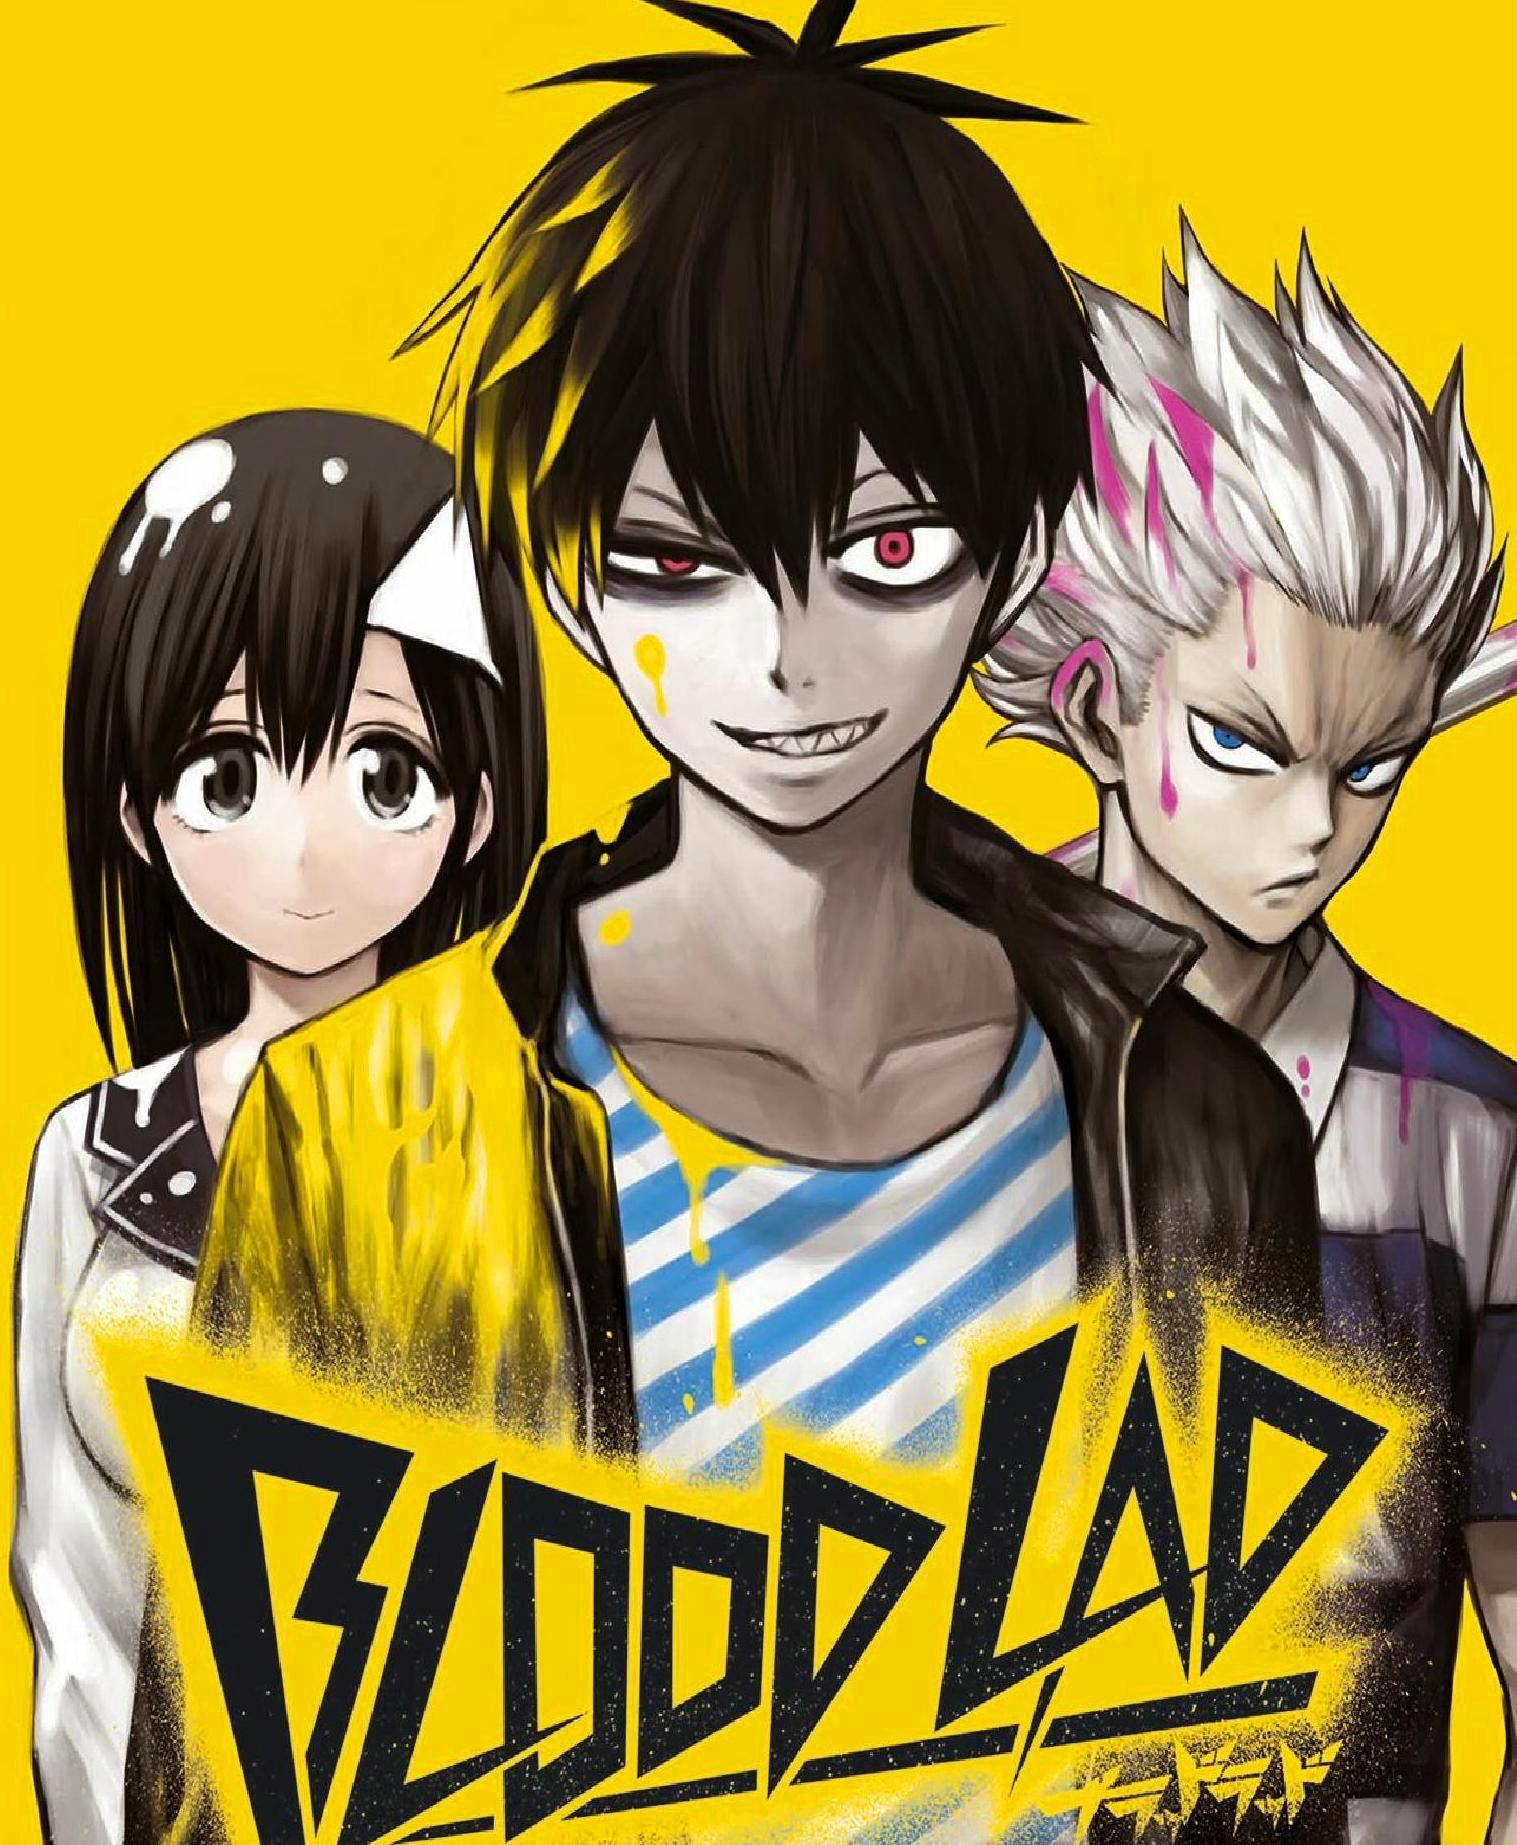 Blood Lad 10 10 OVA BD 1080p MEGA Ultimate Anime HD